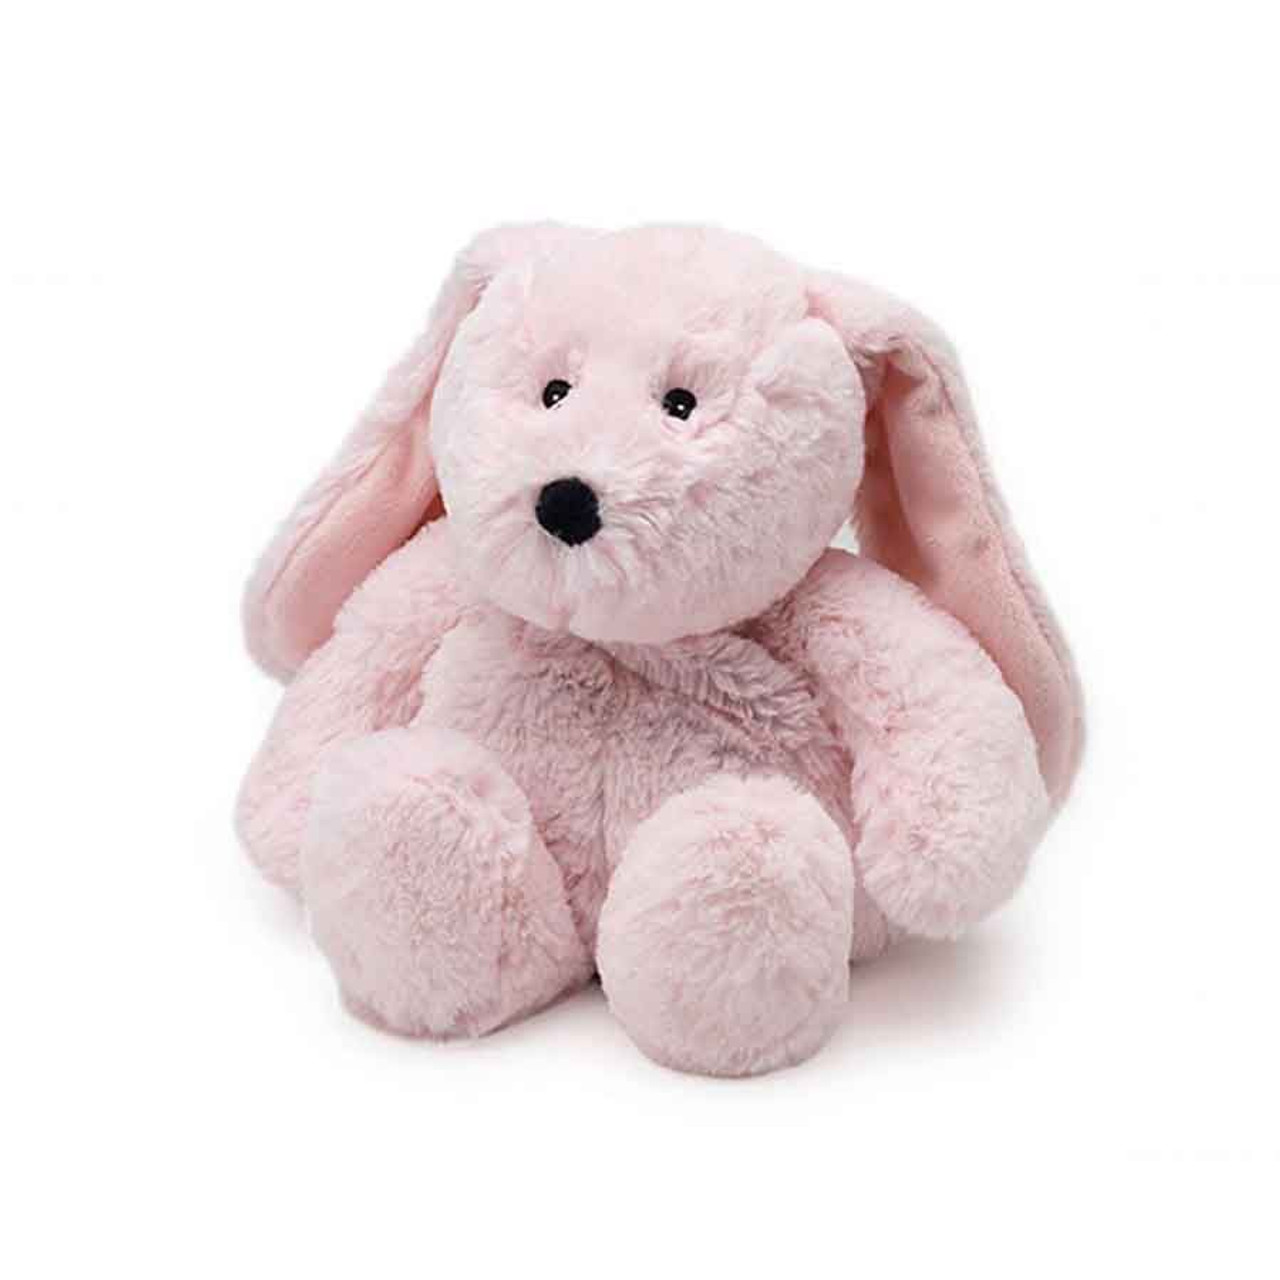 "All age groups can have hours of fun using their Warmies® Cozy Plush Pink Bunny, knowing that they can be warm all night long.   The 13"" Pink Bunny is fully microwavable yet entirely safe to hold tight after taking a bath, putting on PJs, and heading up the stairs to bed."